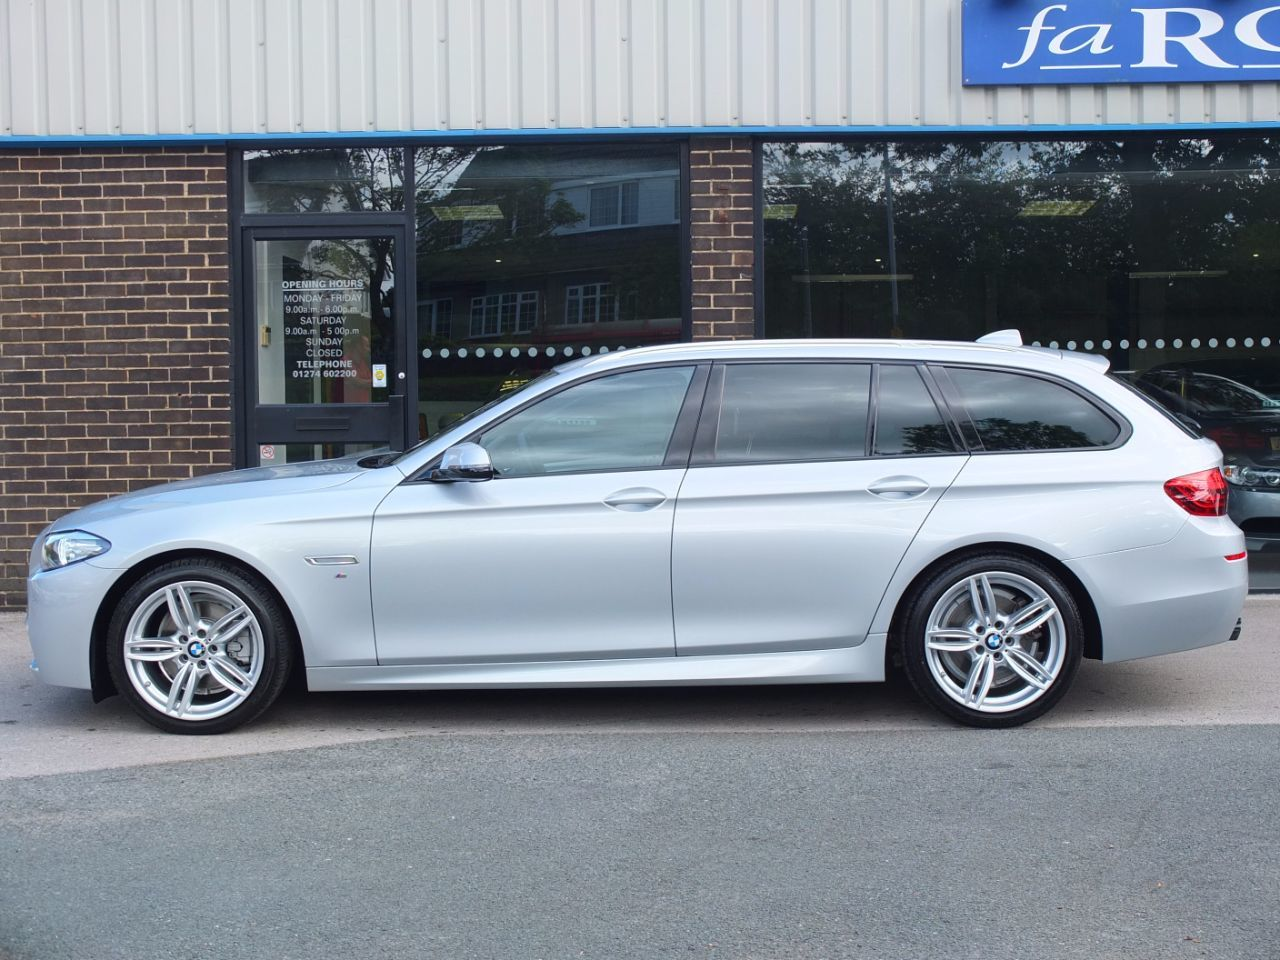 BMW 5 Series 2.0 520d 190ps M Sport Touring Auto +++Spec Estate Diesel Glacier Silver Metallic